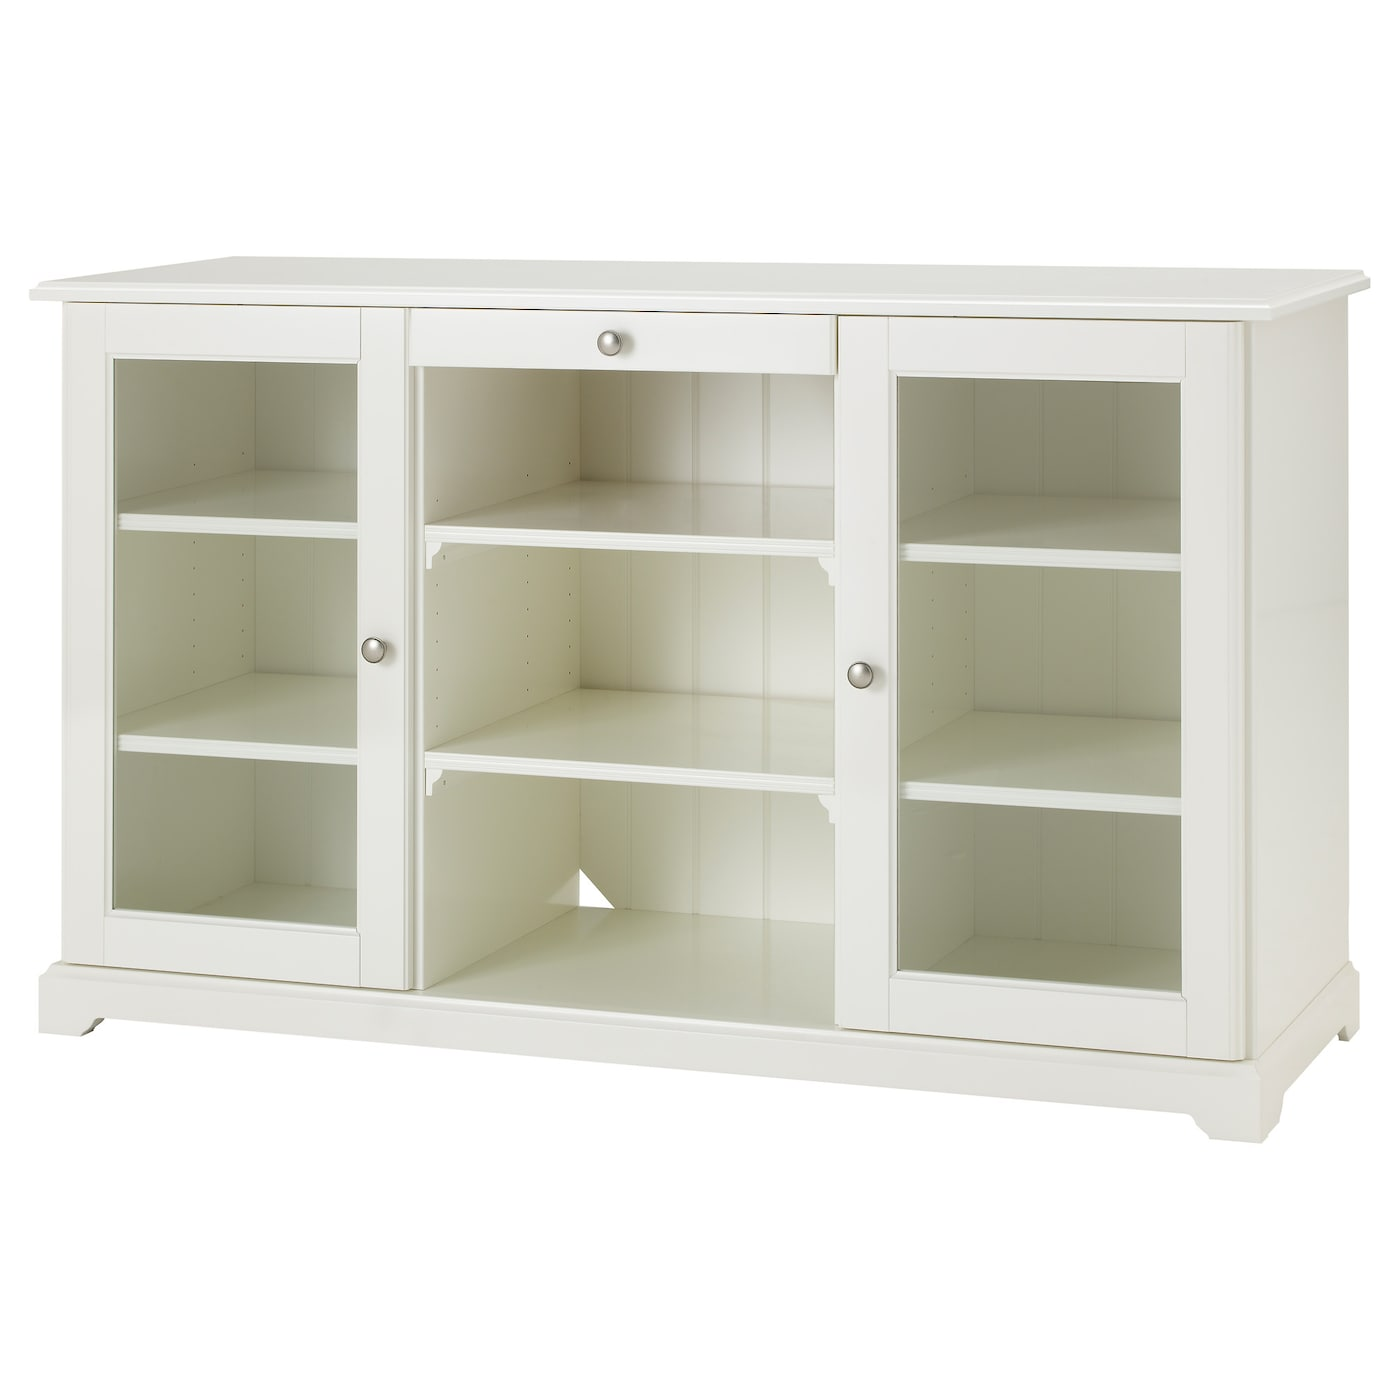 Liatorp sideboard white 145x87 cm ikea for Meuble vitrine ikea